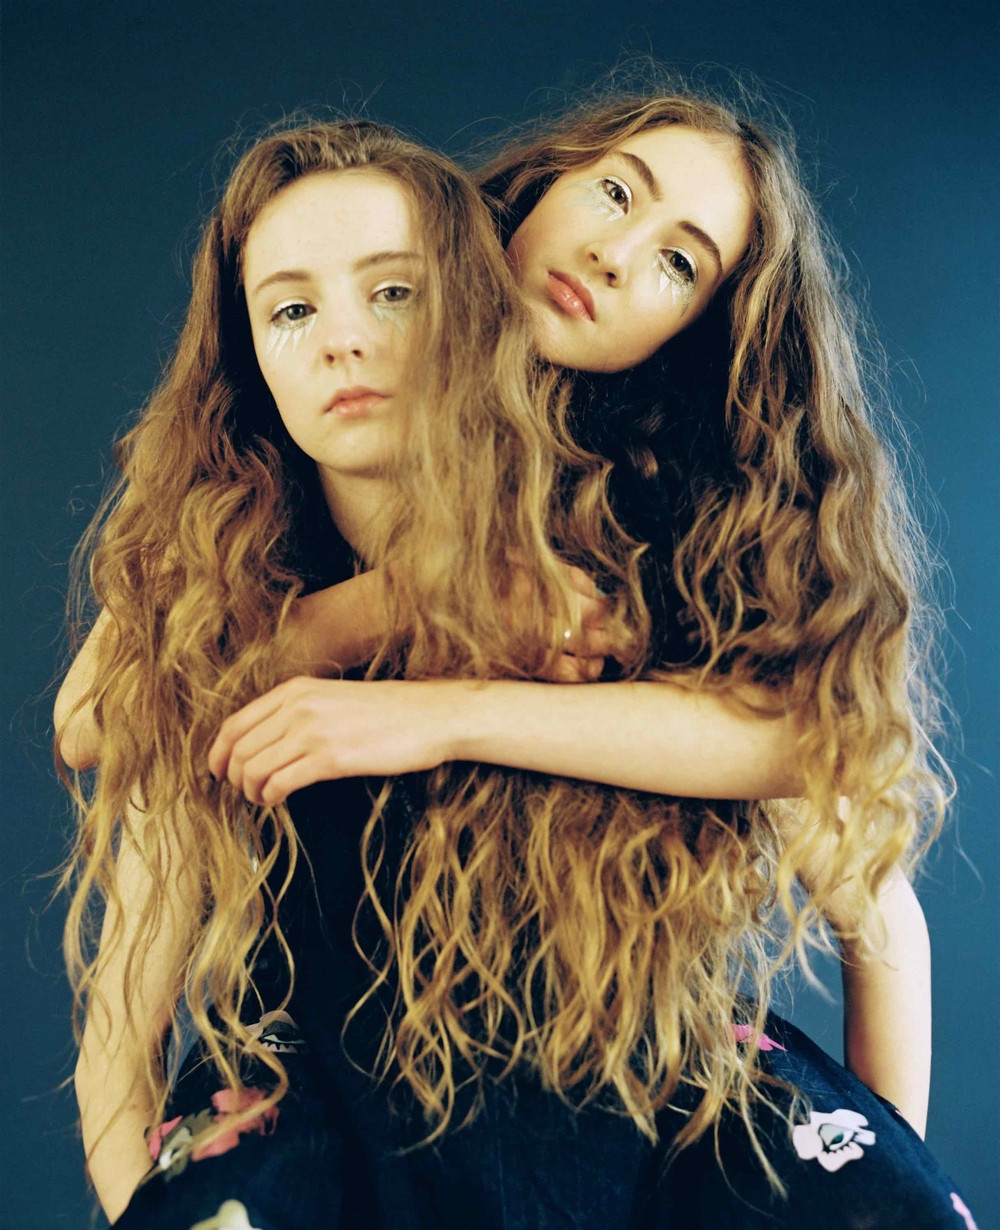 Let's Eat Grandma tickets and 2019 tour dates